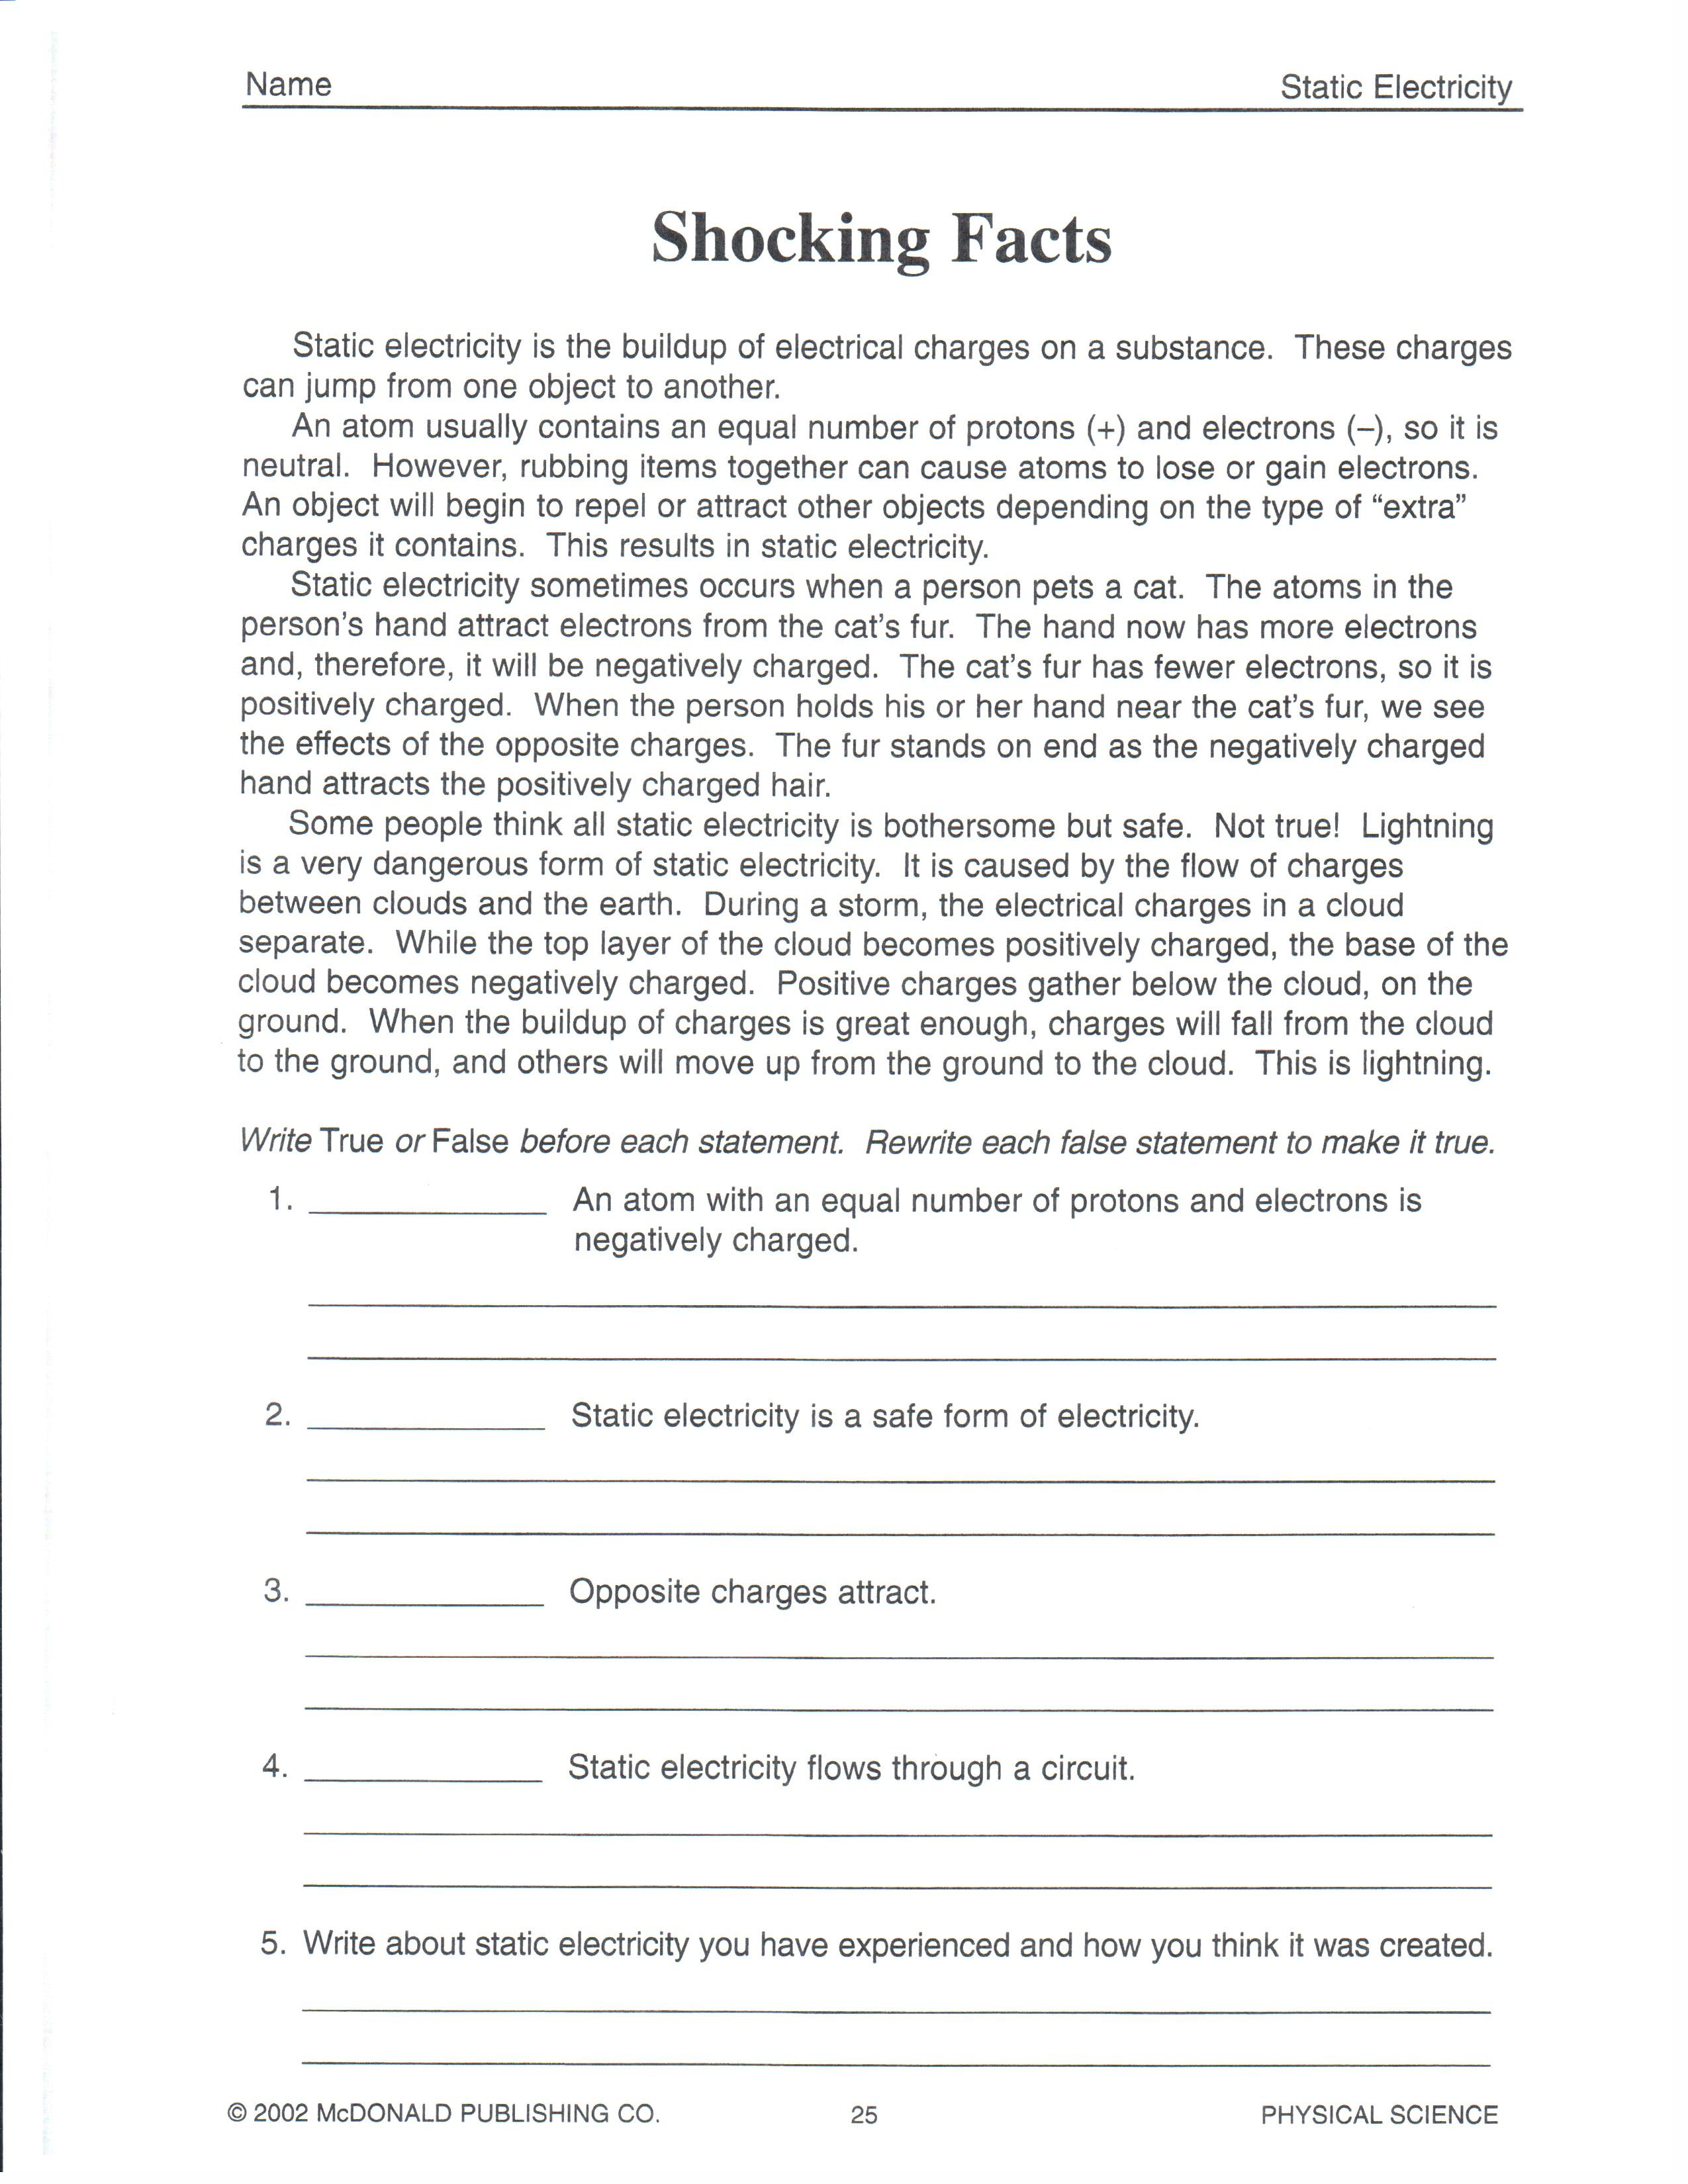 Science Worksheets for 8th Grade Multiple Meaning Words Worksheets 8th Grade & April 2013 the